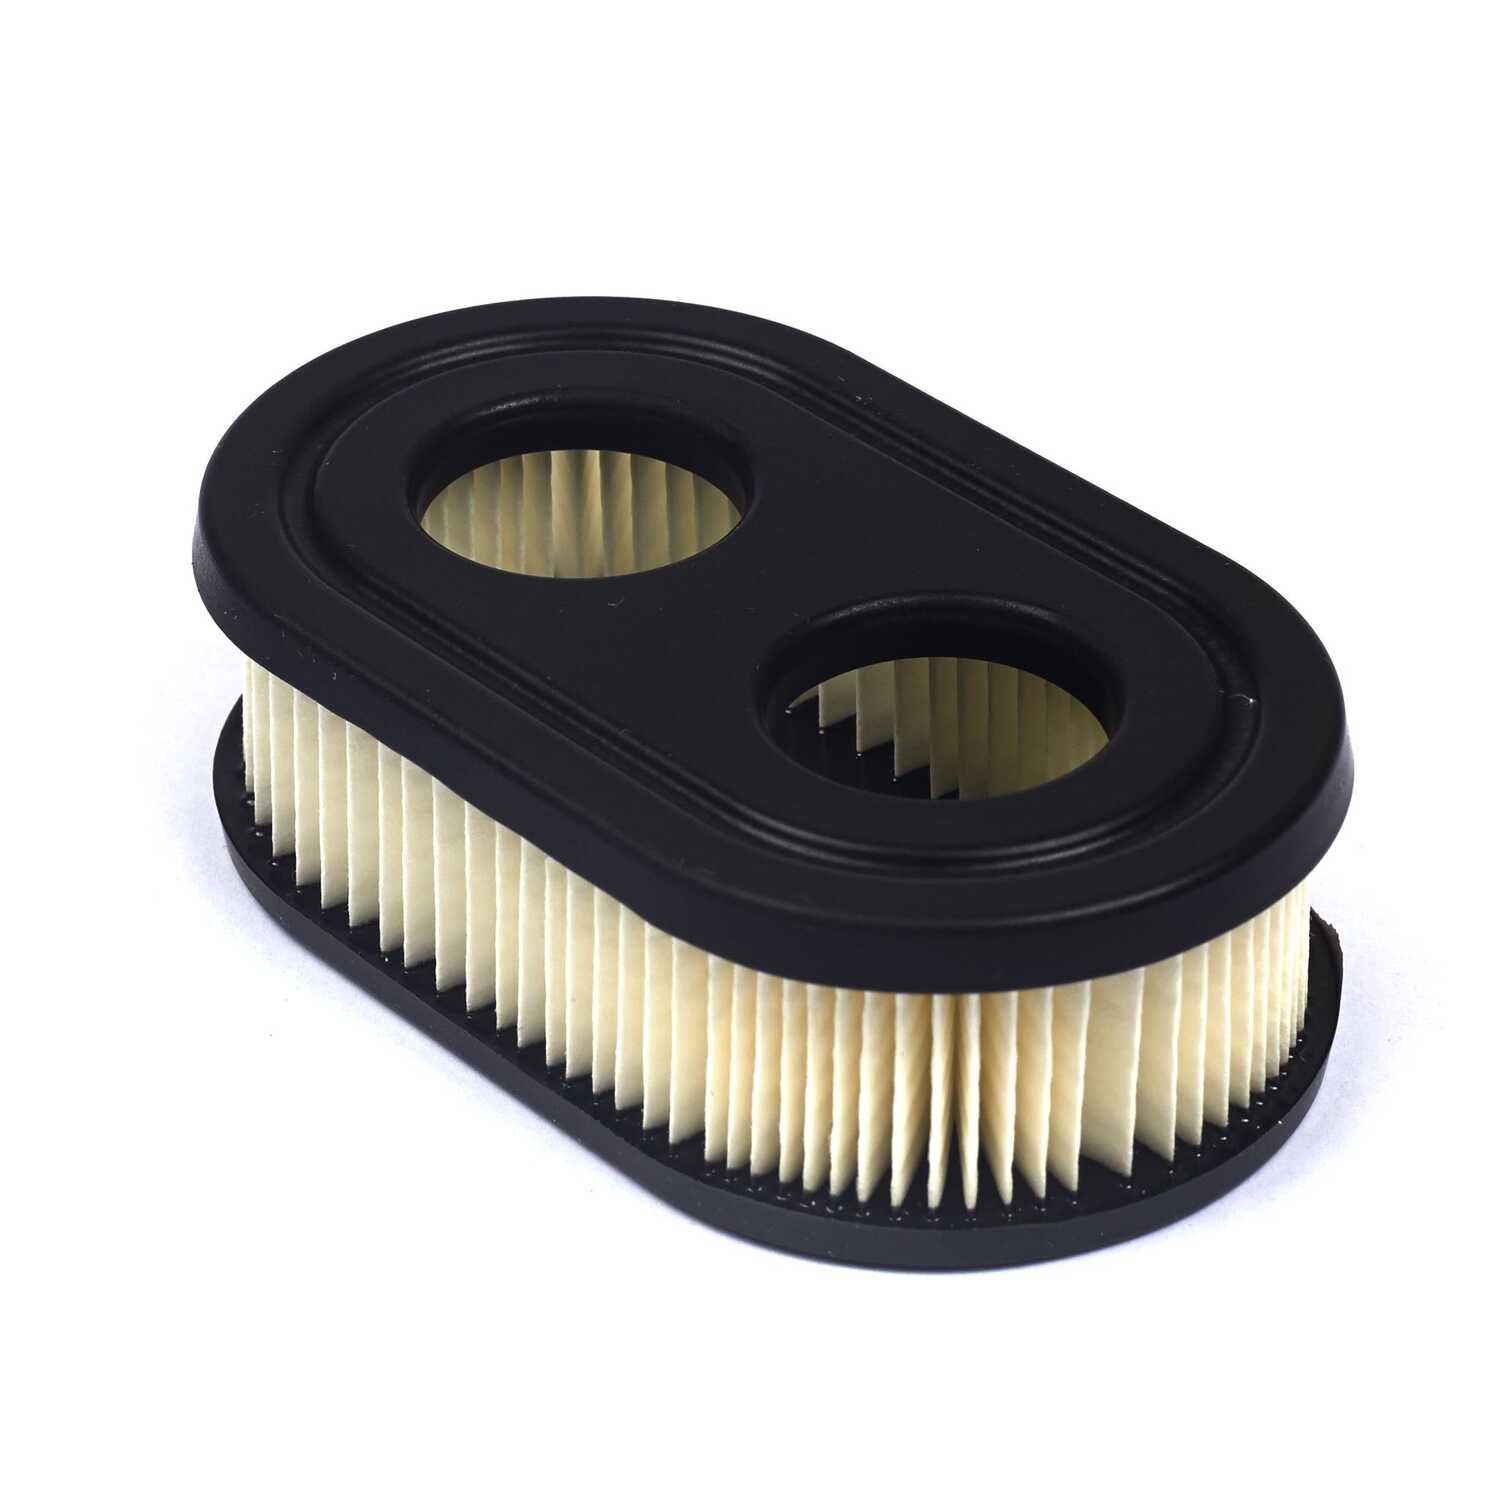 Briggs & Stratton Small Engine Air Filter - Ace Hardware